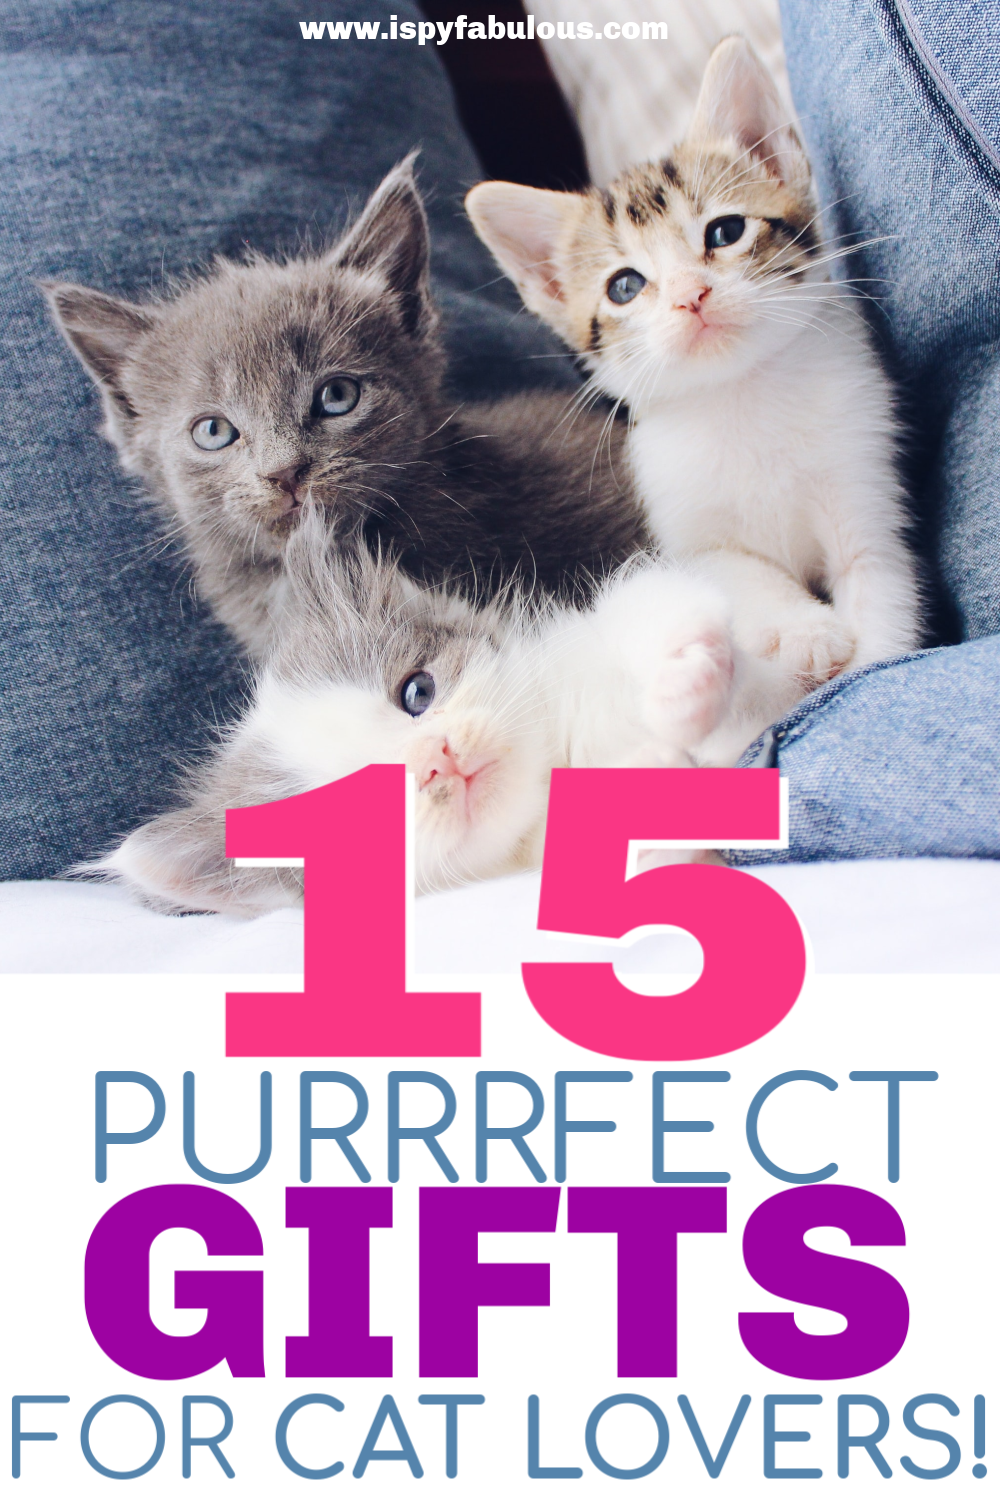 15 Purrfect Gifts For The Cat Lover On Amazon I Spy Fabulous In 2020 Cat Lovers Cat Love Quotes Cats